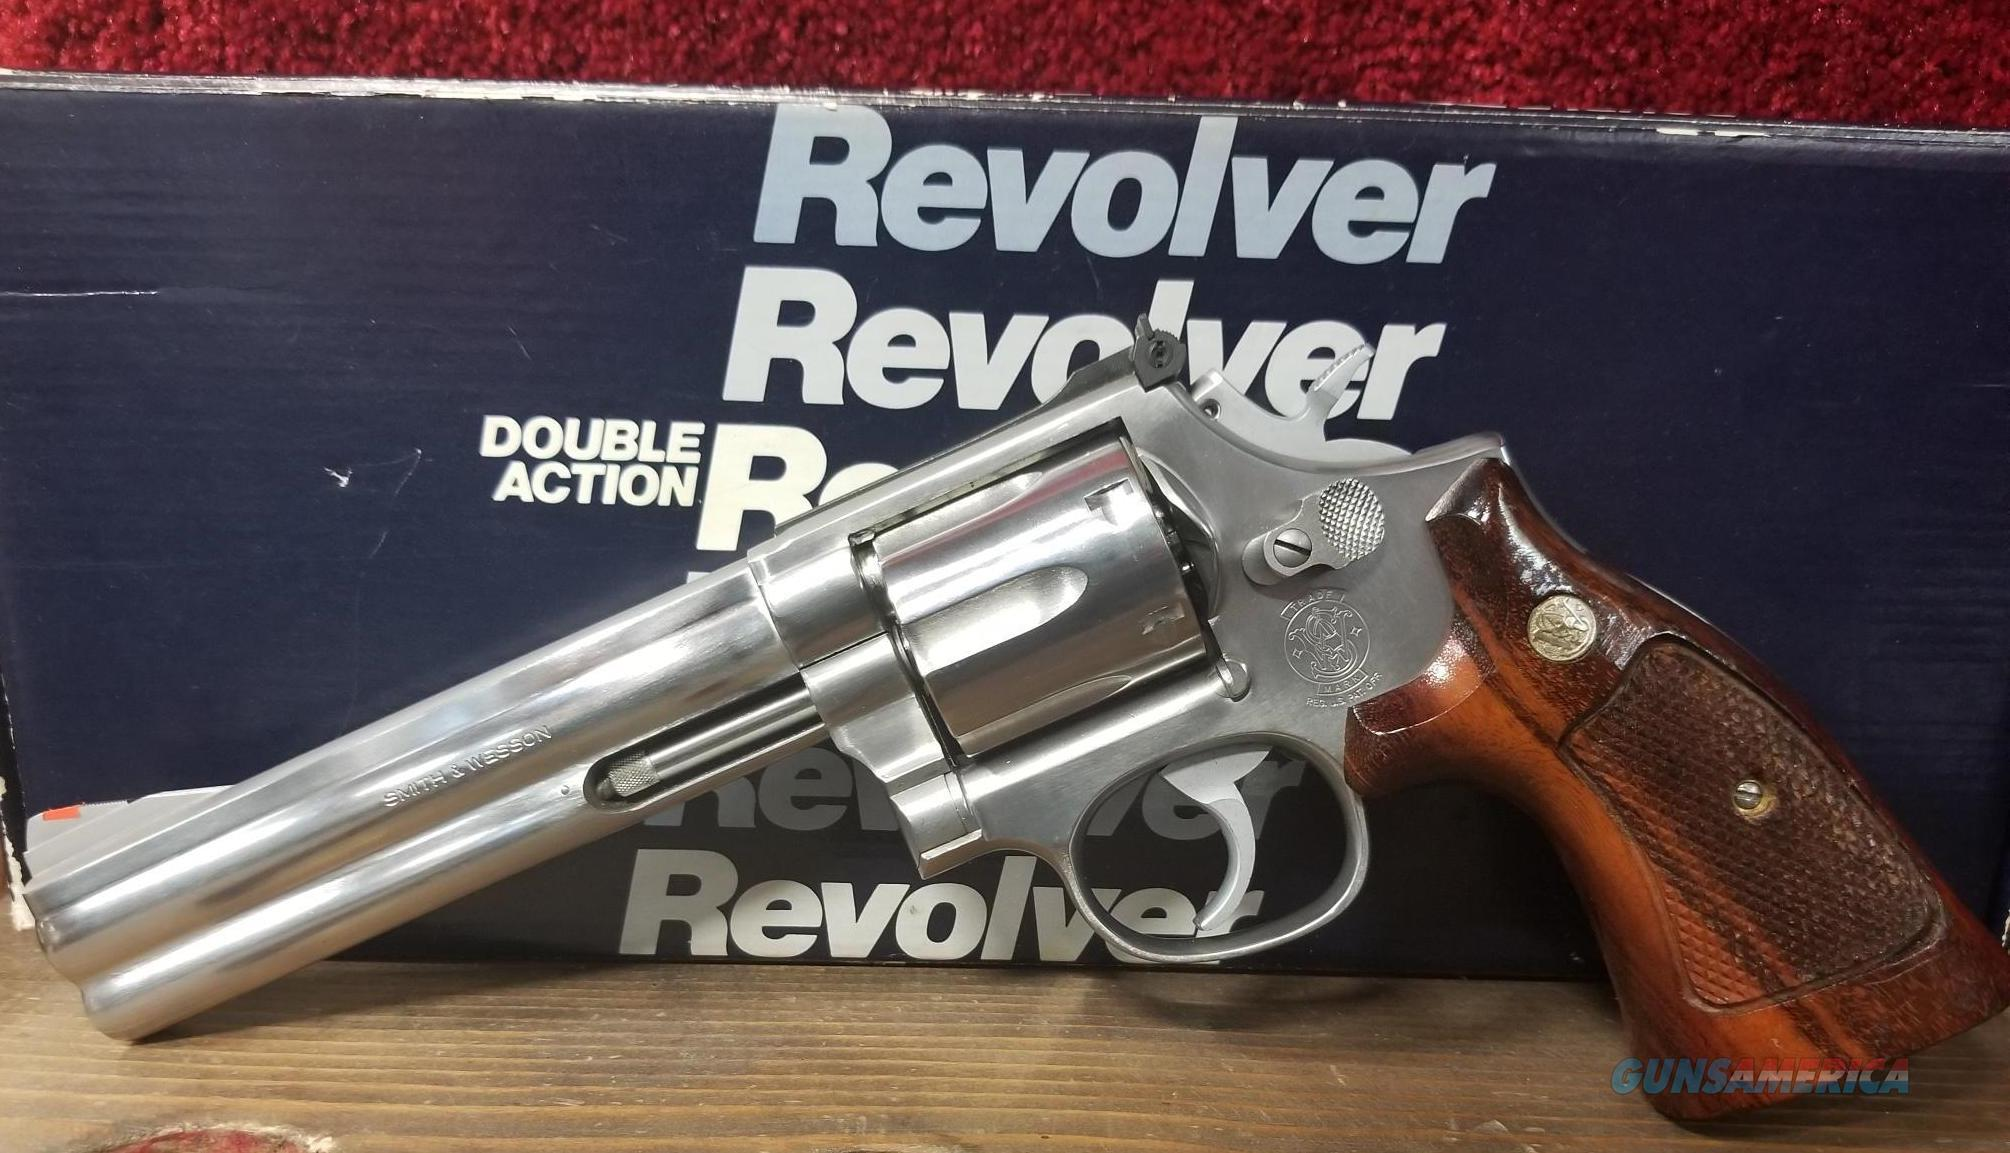 GENTLY USED SMITH & WESSON 686 NO DASH ORIGINAL BOX FREE SHIPPING NO CC FEE  Guns > Pistols > Smith & Wesson Revolvers > Med. Frame ( K/L )